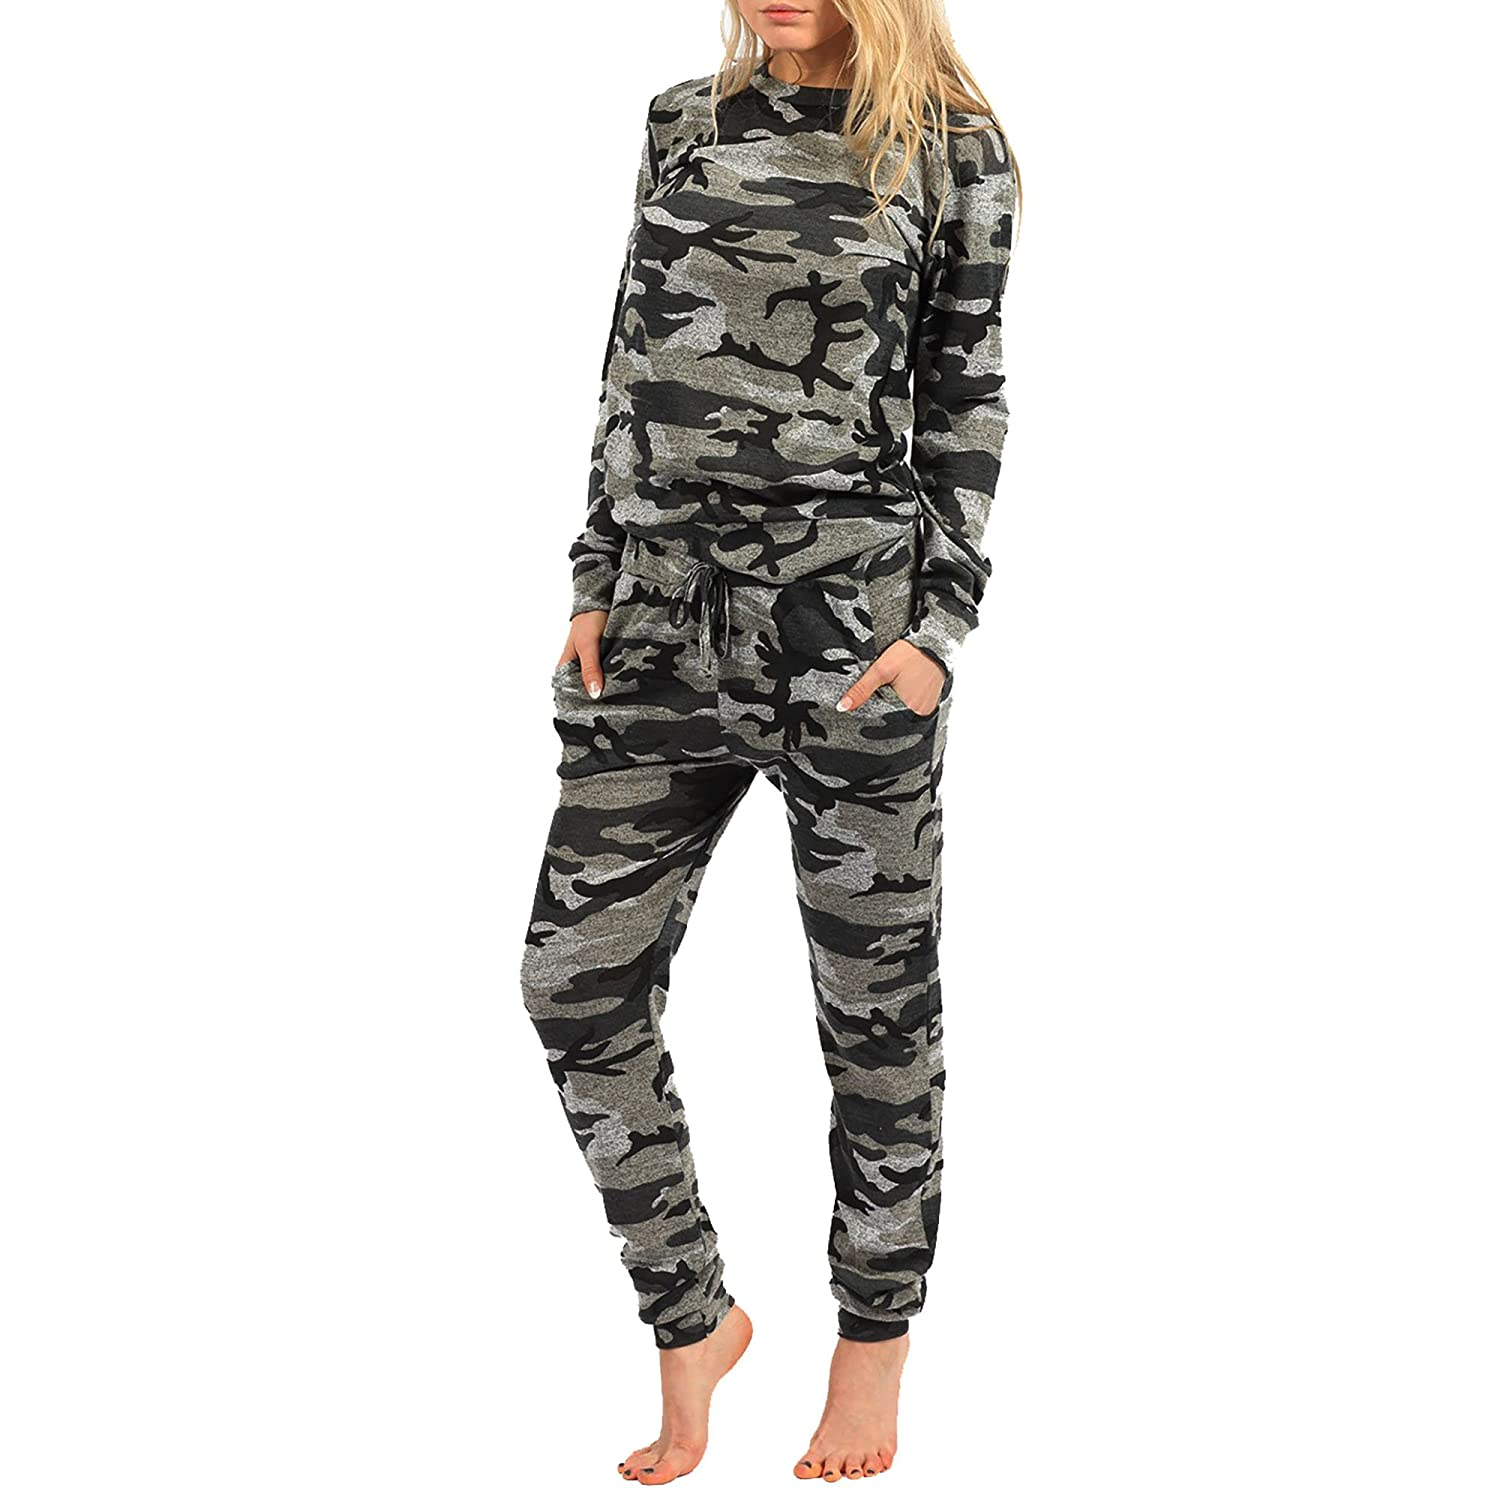 SCO New Womens Camouflage Jogging Suit Set Camo Soft Knitted Full Tracksuit 00-5